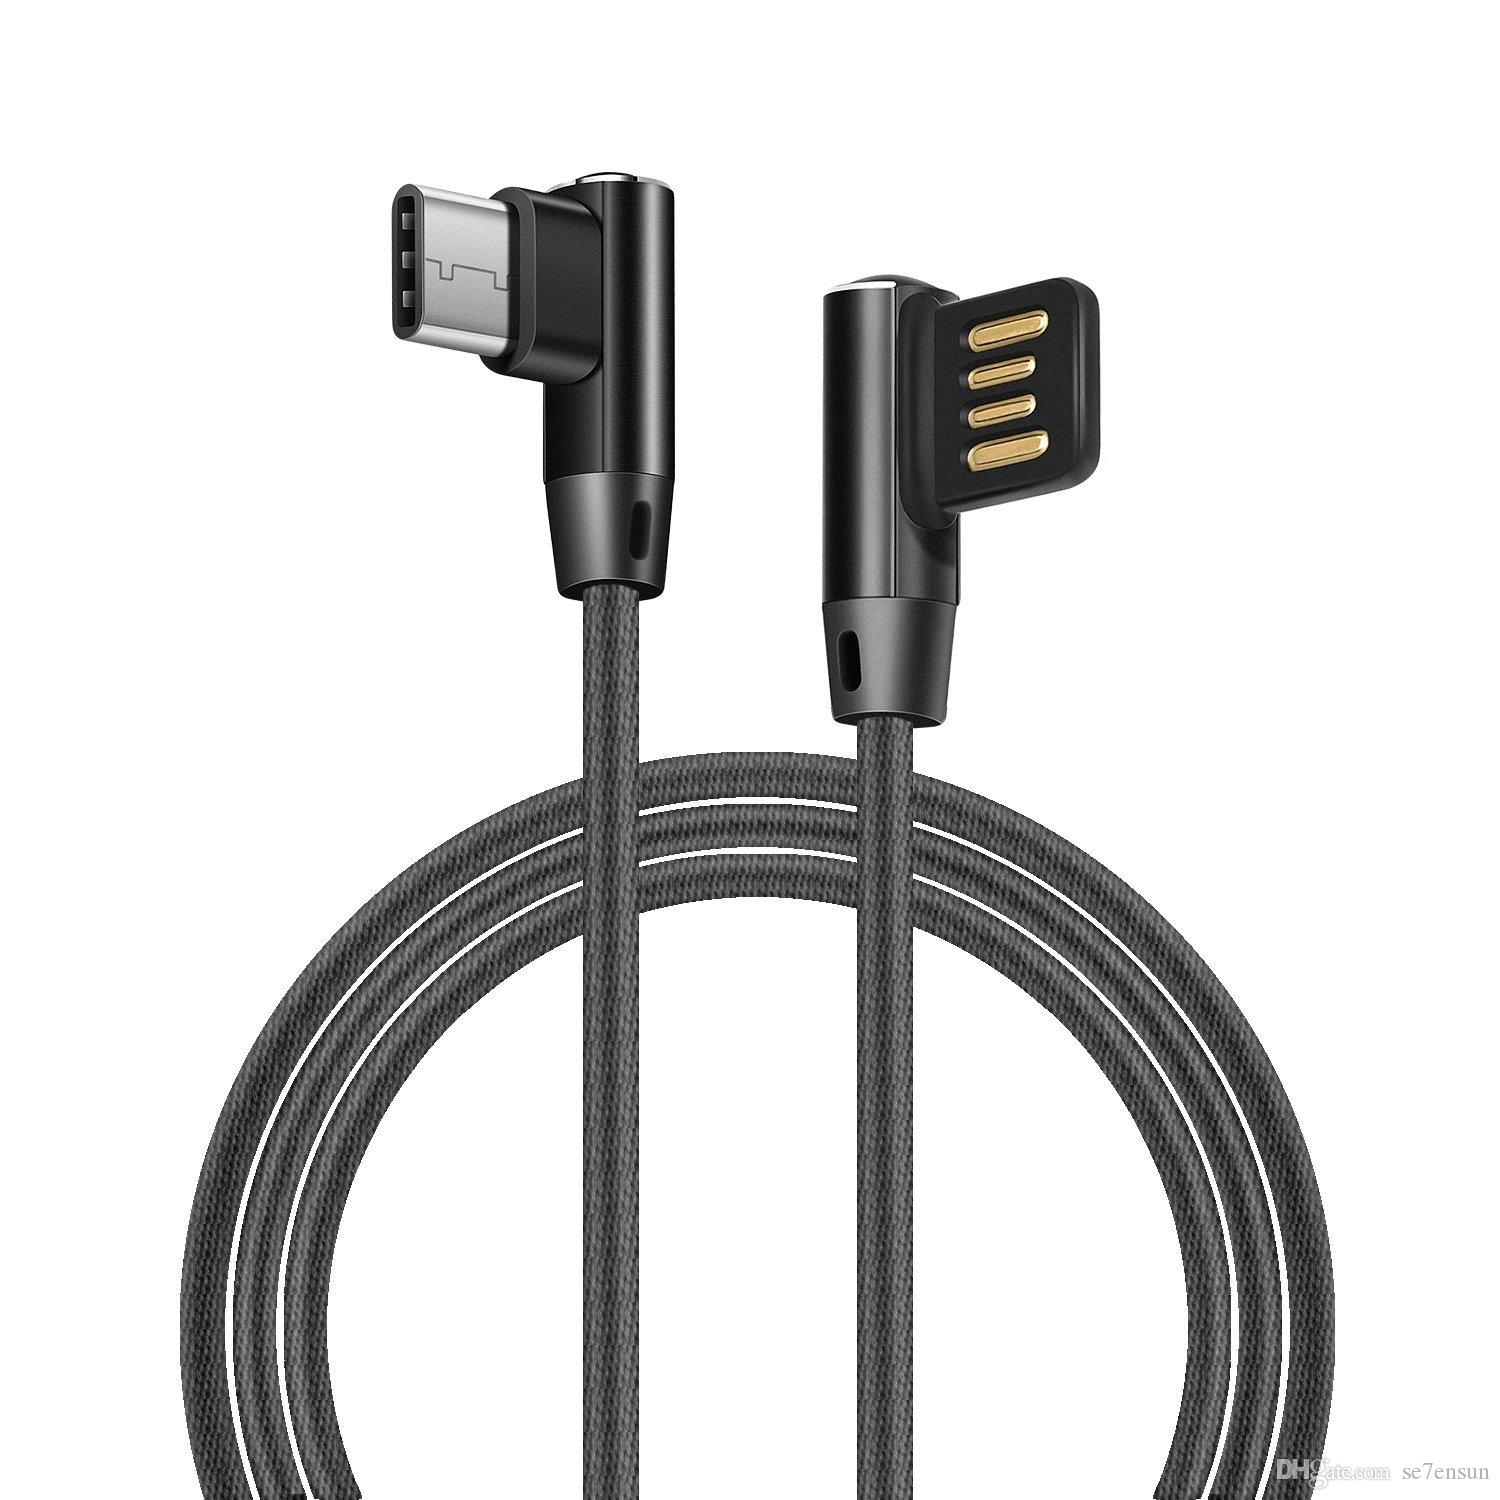 Usb Type C Cable 2a Fast Charging For Samsung S8 Plus 90 Degree Kabel Xiaomi Data Xiomi Original Reversible Micro L Bending Nylon Cord Mobile Cables Phone From